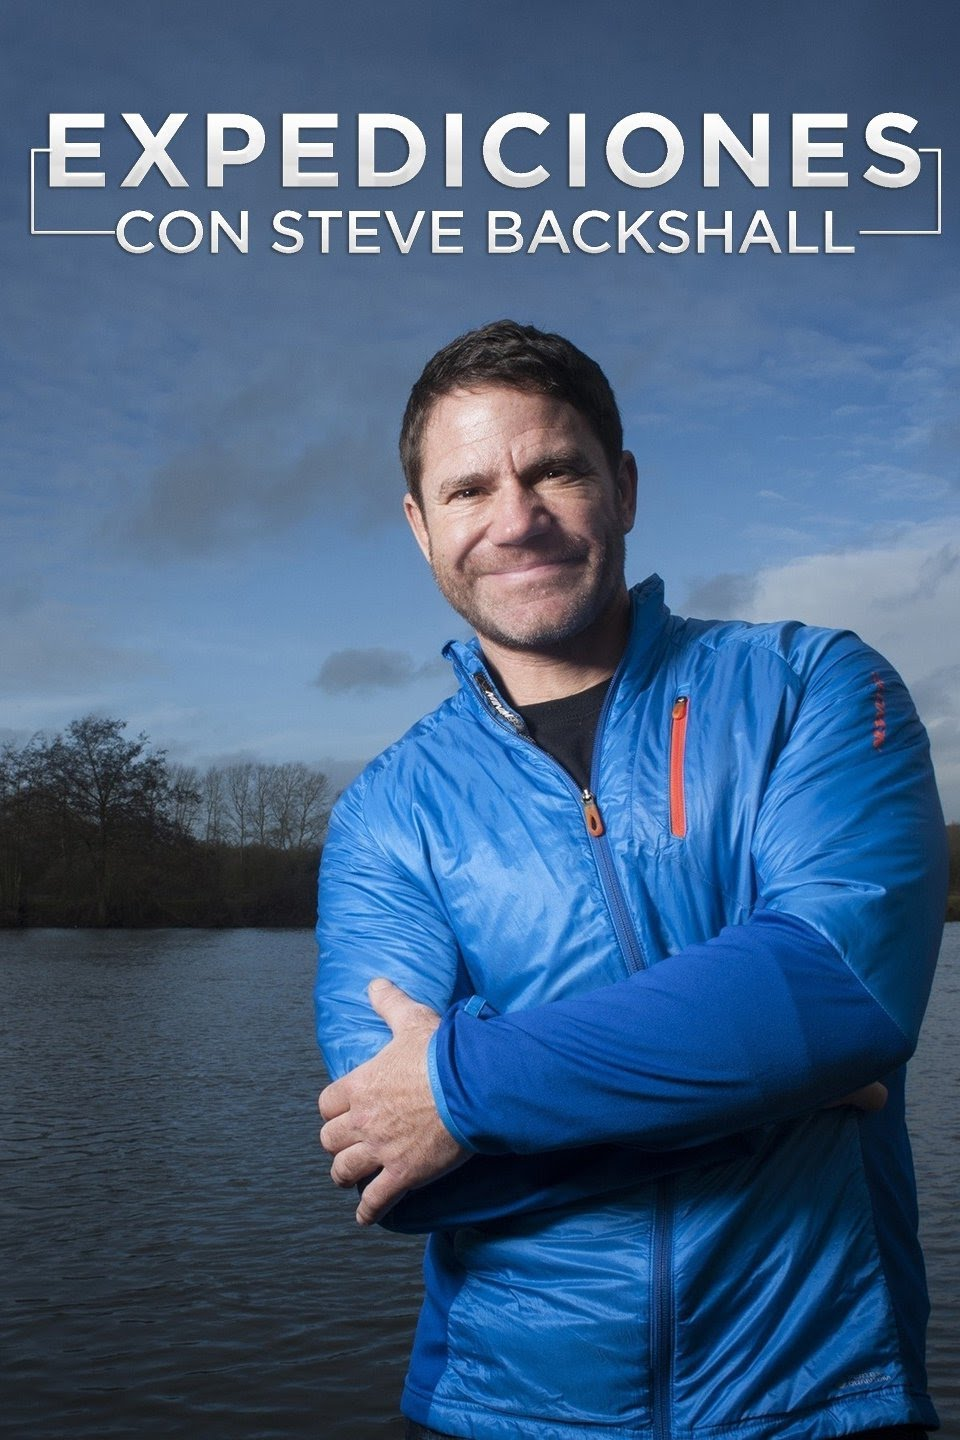 Expediciones con Steve Backshall